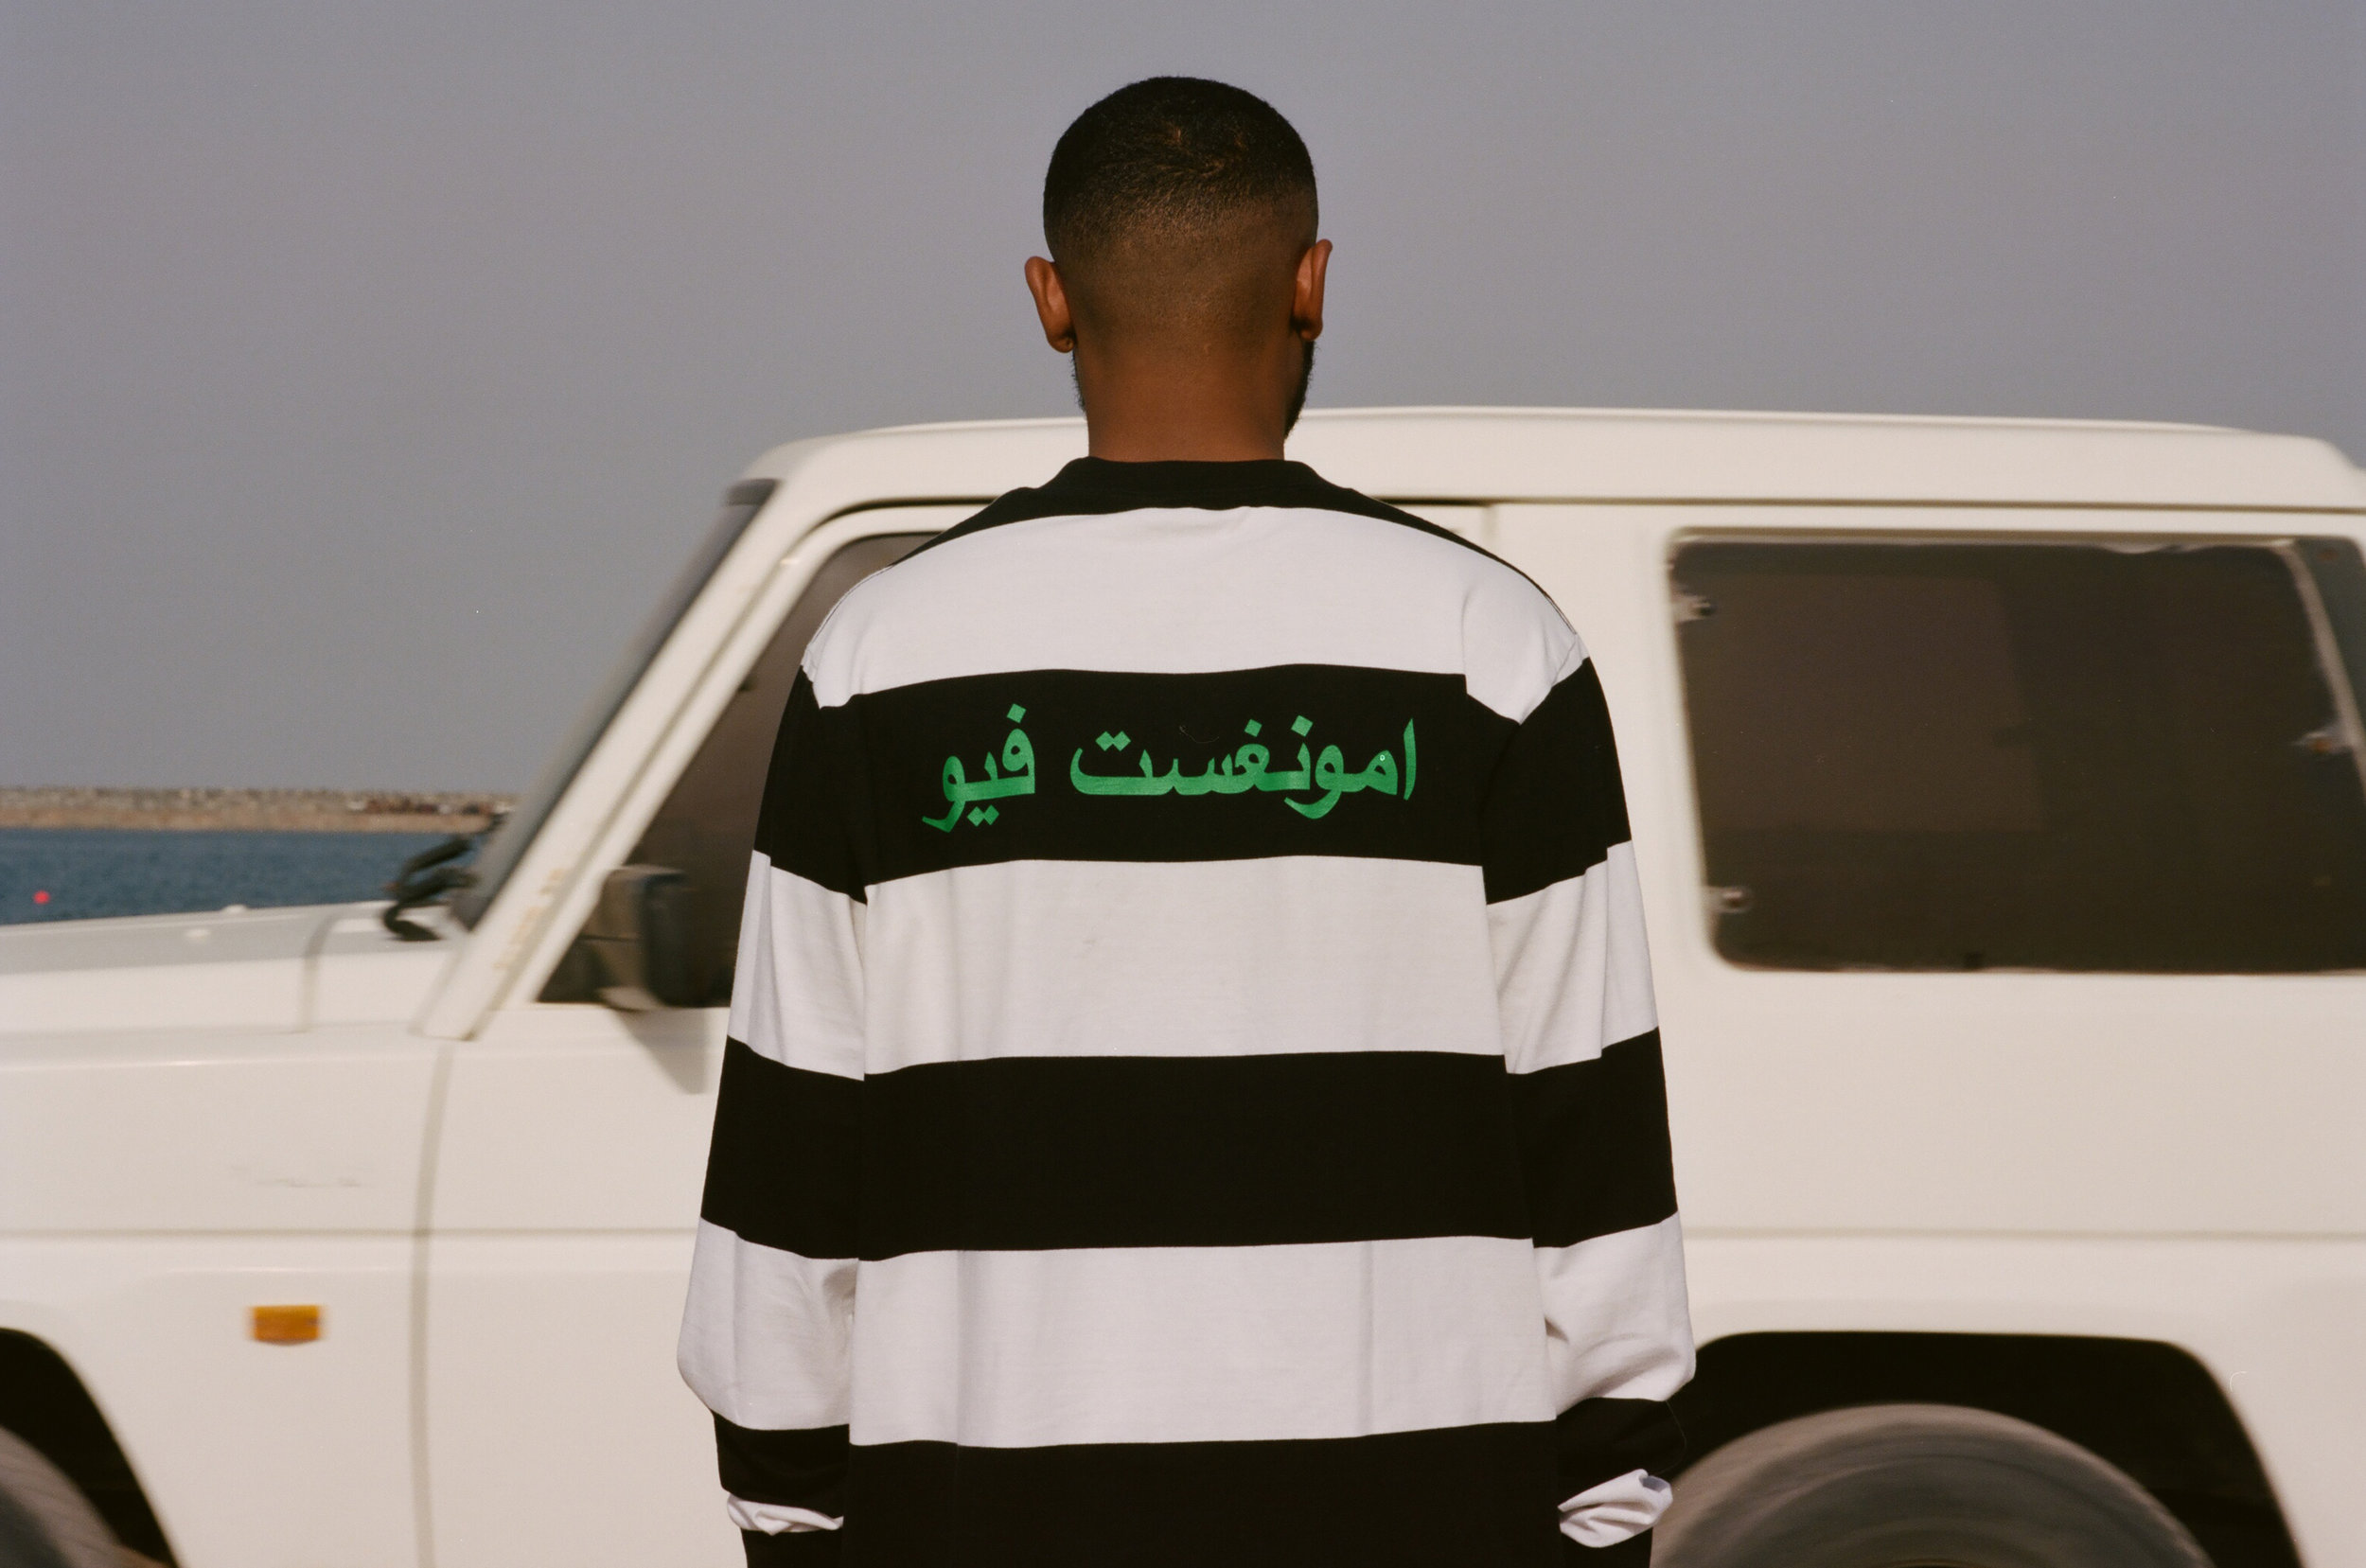 amongst-few-limited-liability-collection-lookbook-01.jpg